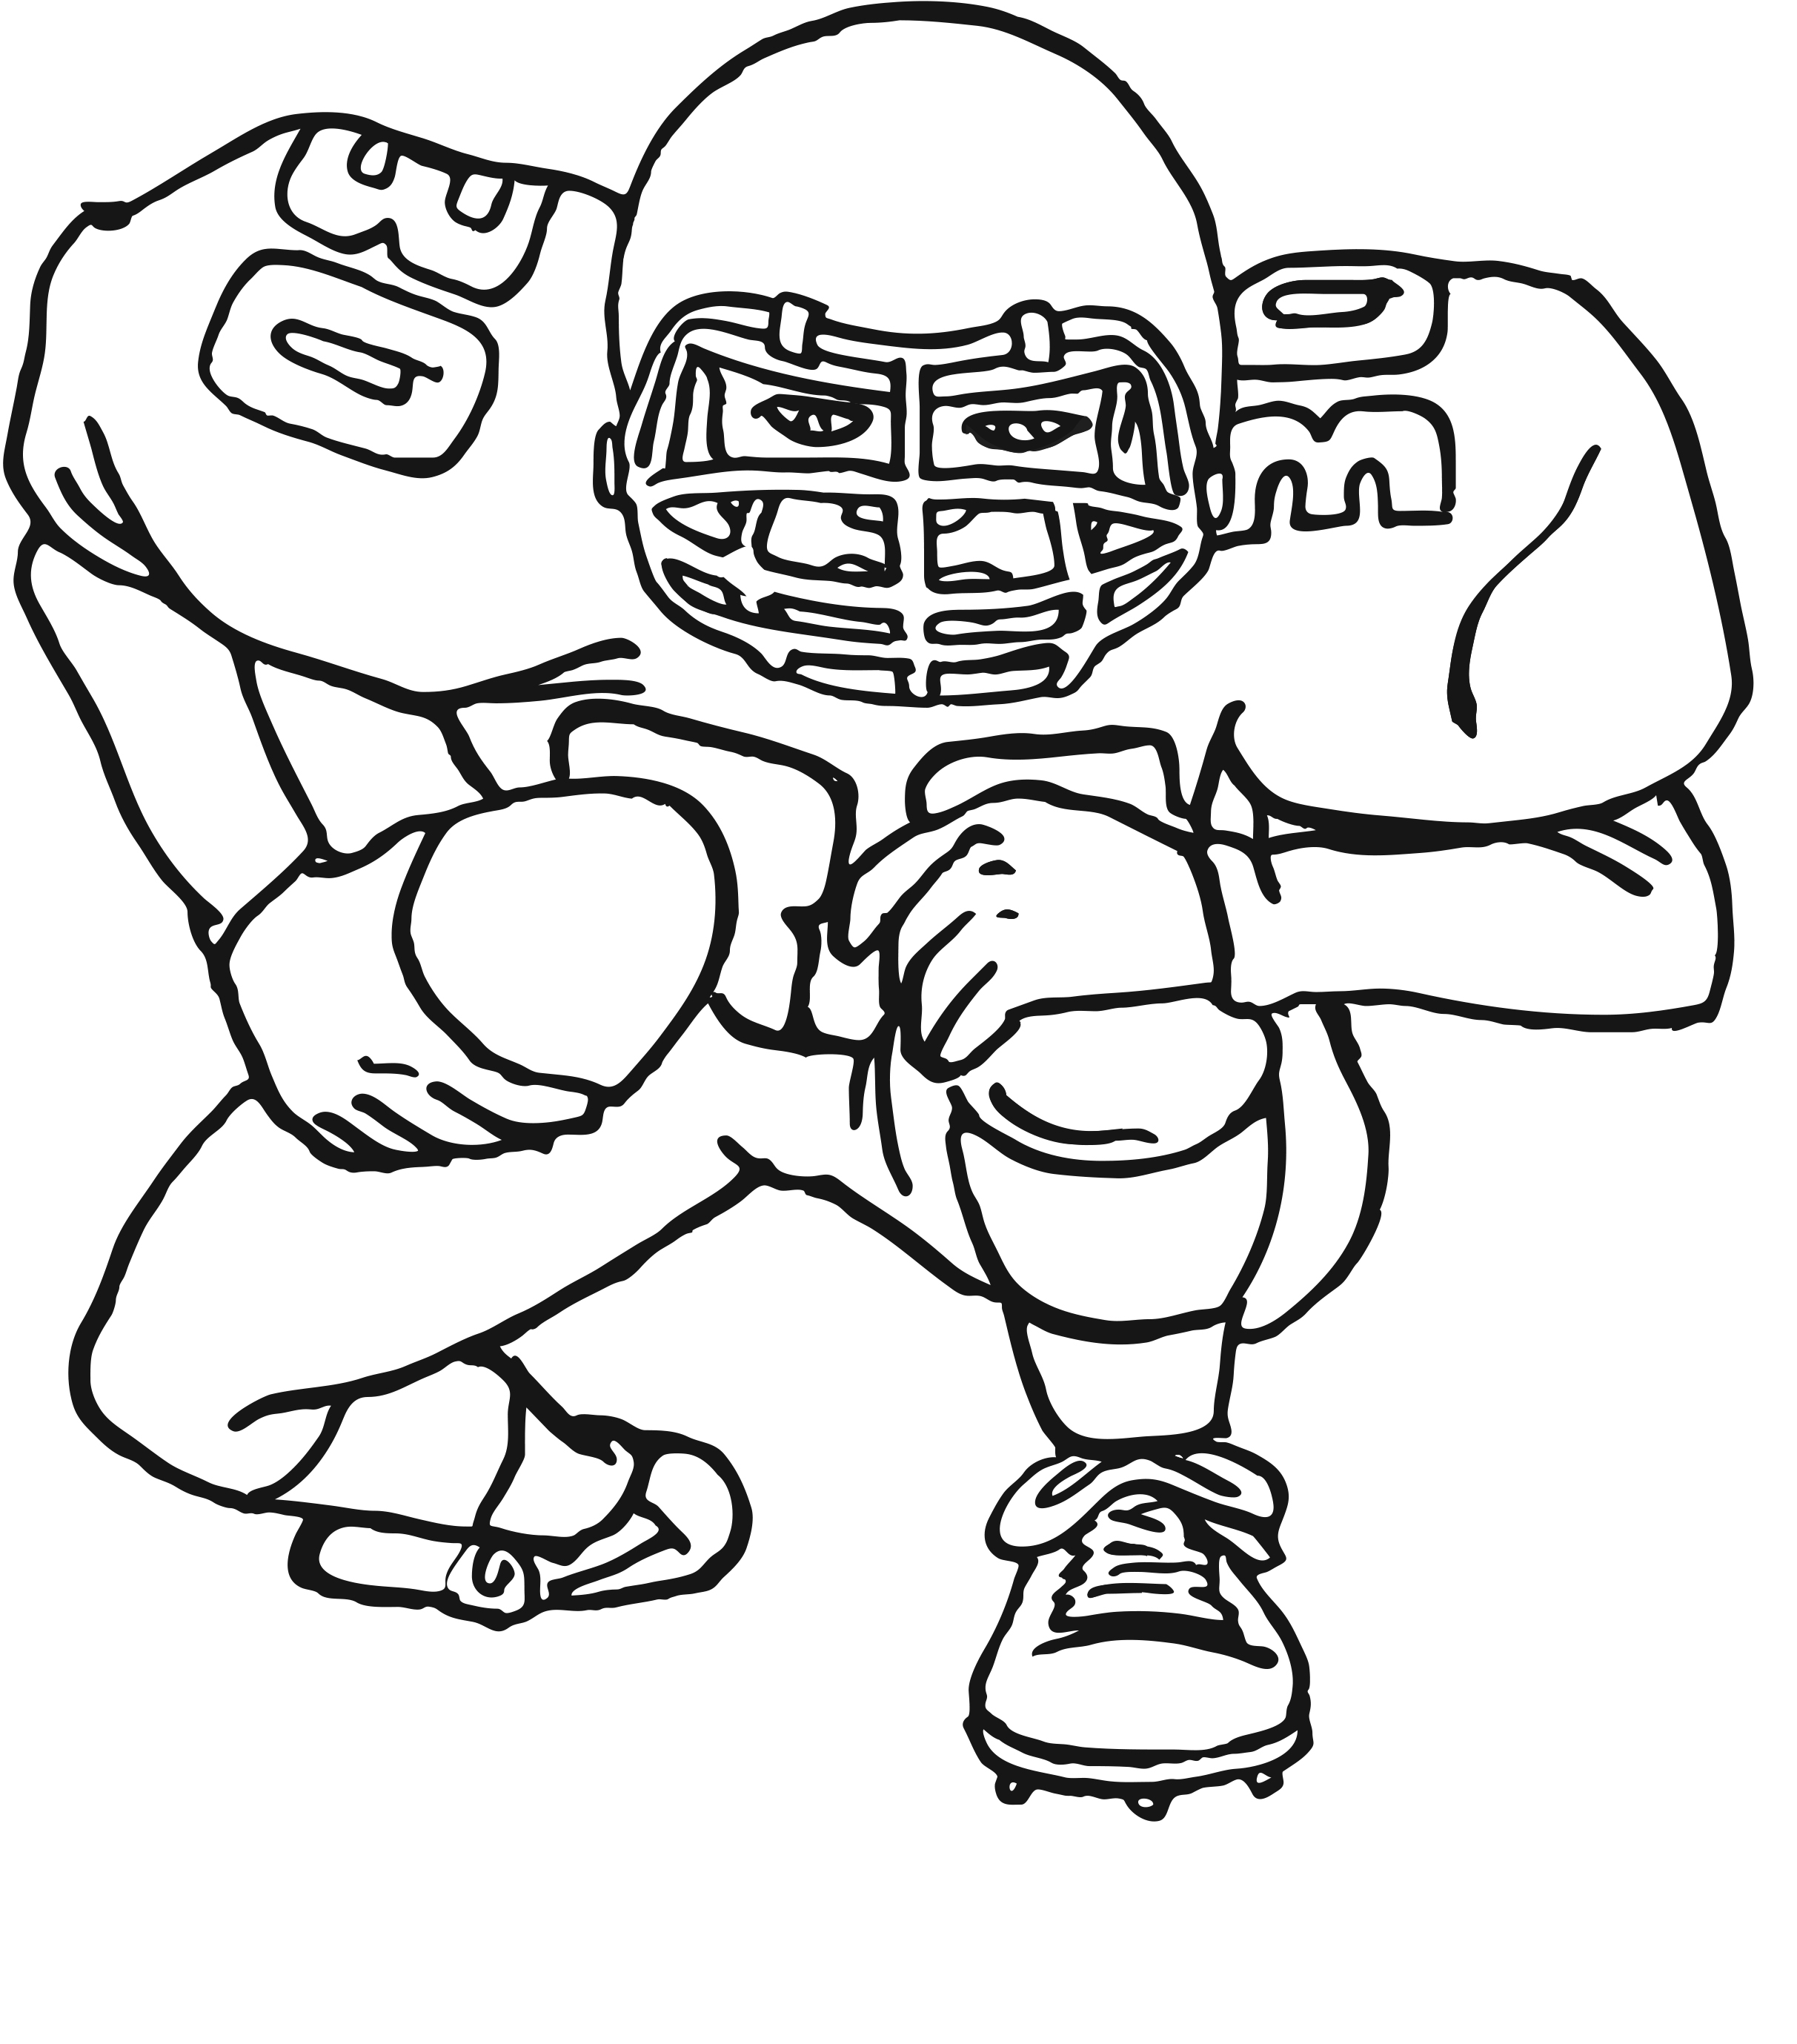 football coloring pages printable free printable football coloring pages for kids best football pages printable coloring